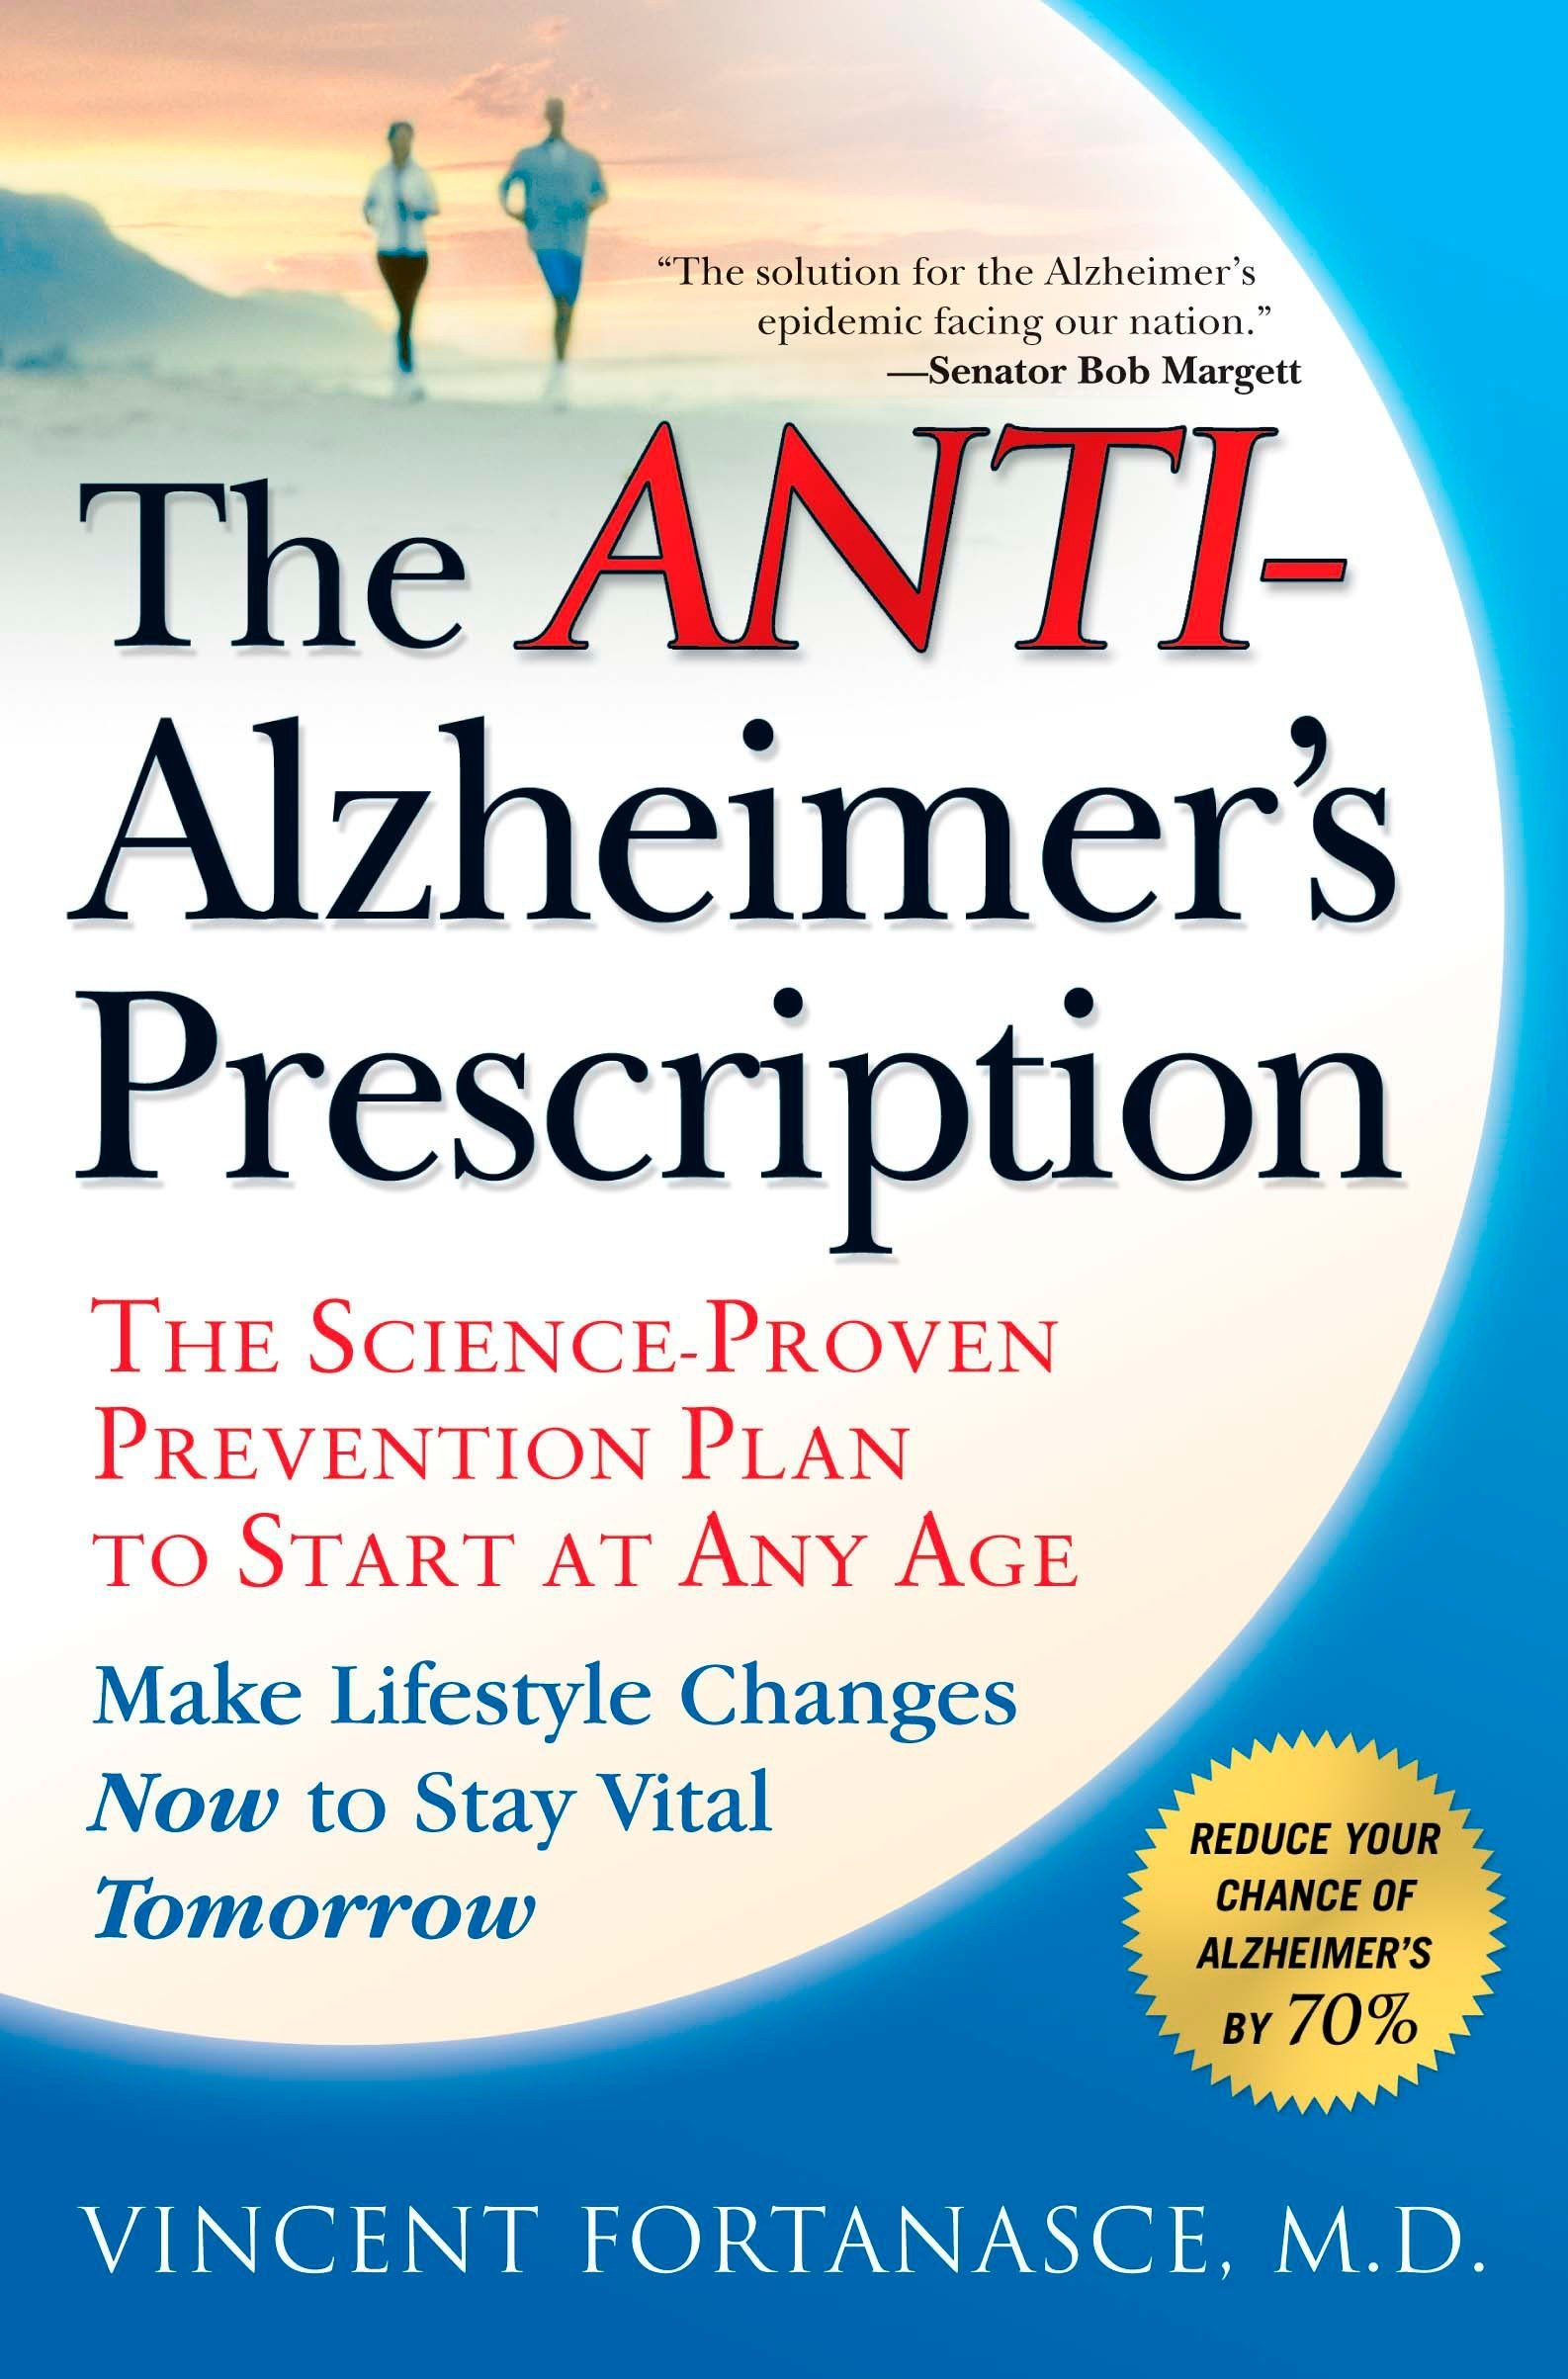 The Anti-Alzheimer's Prescription: The Science-Proven Prevention Plan to  Start at Any Age: Vincent Fortanasce: 9781592404612: Amazon.com: Books